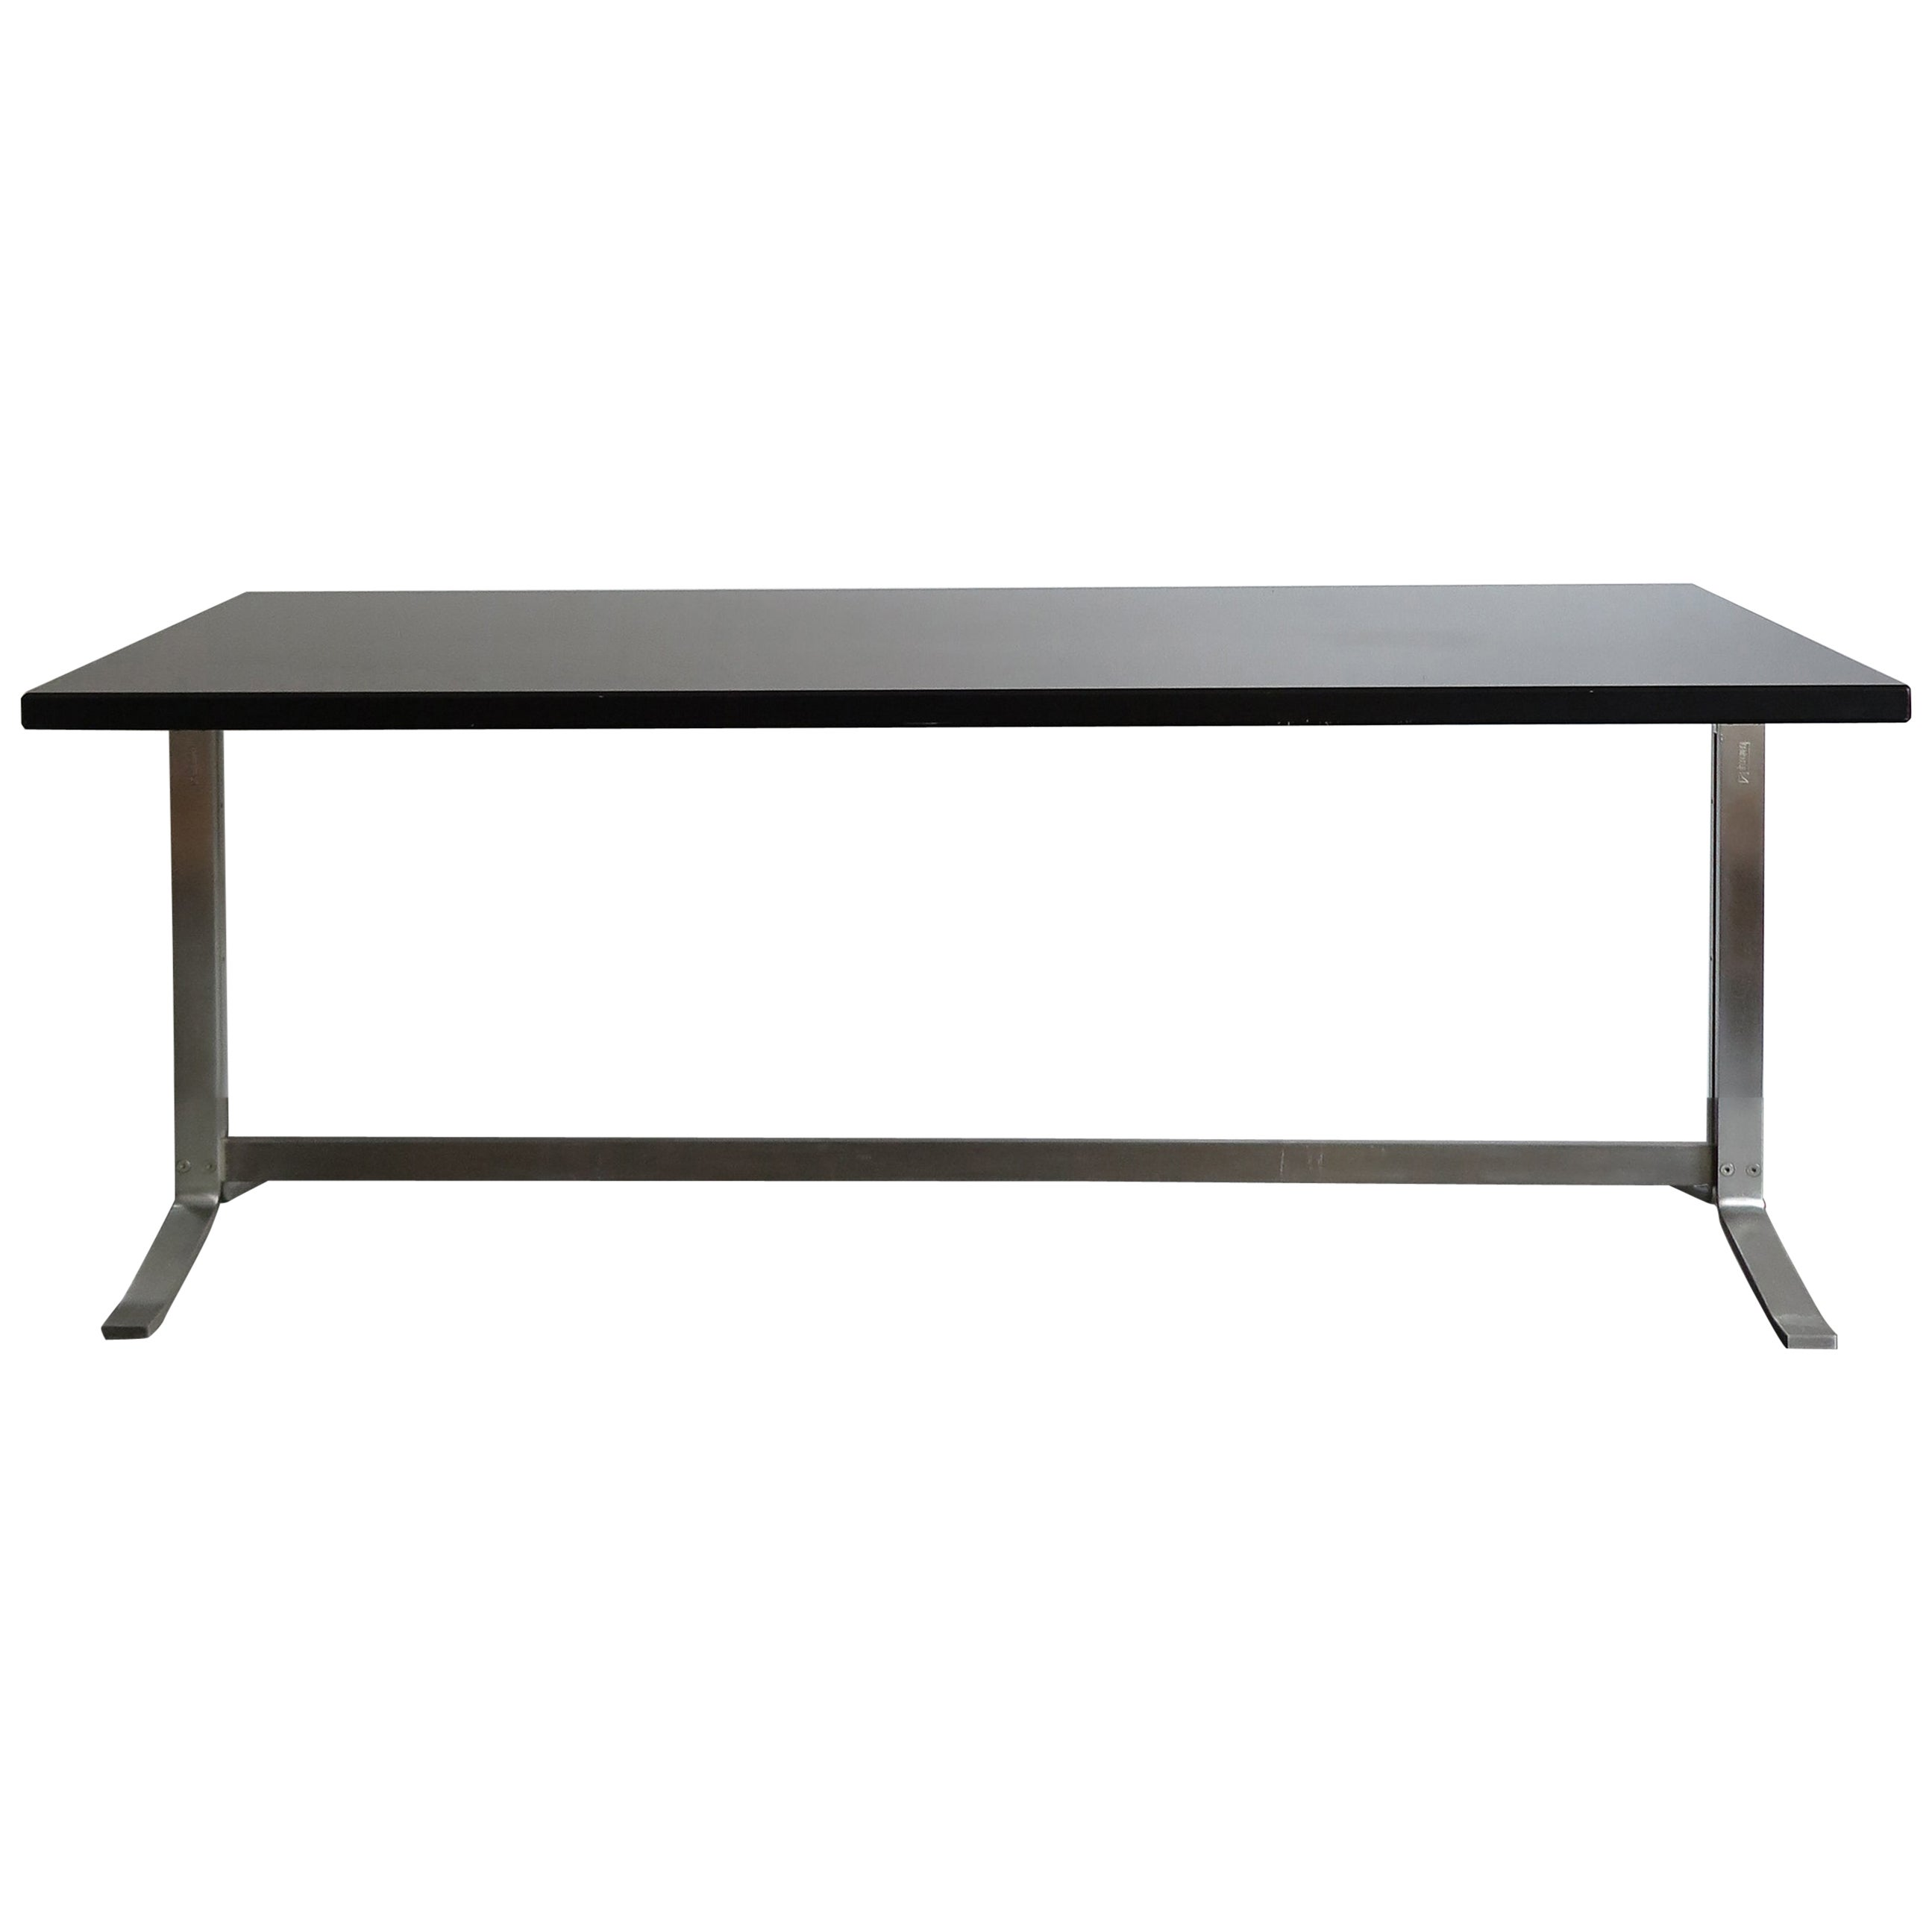 Gianni Moscatelli Italian Formanova Dark Wood and Steel Desk Table, 1960s